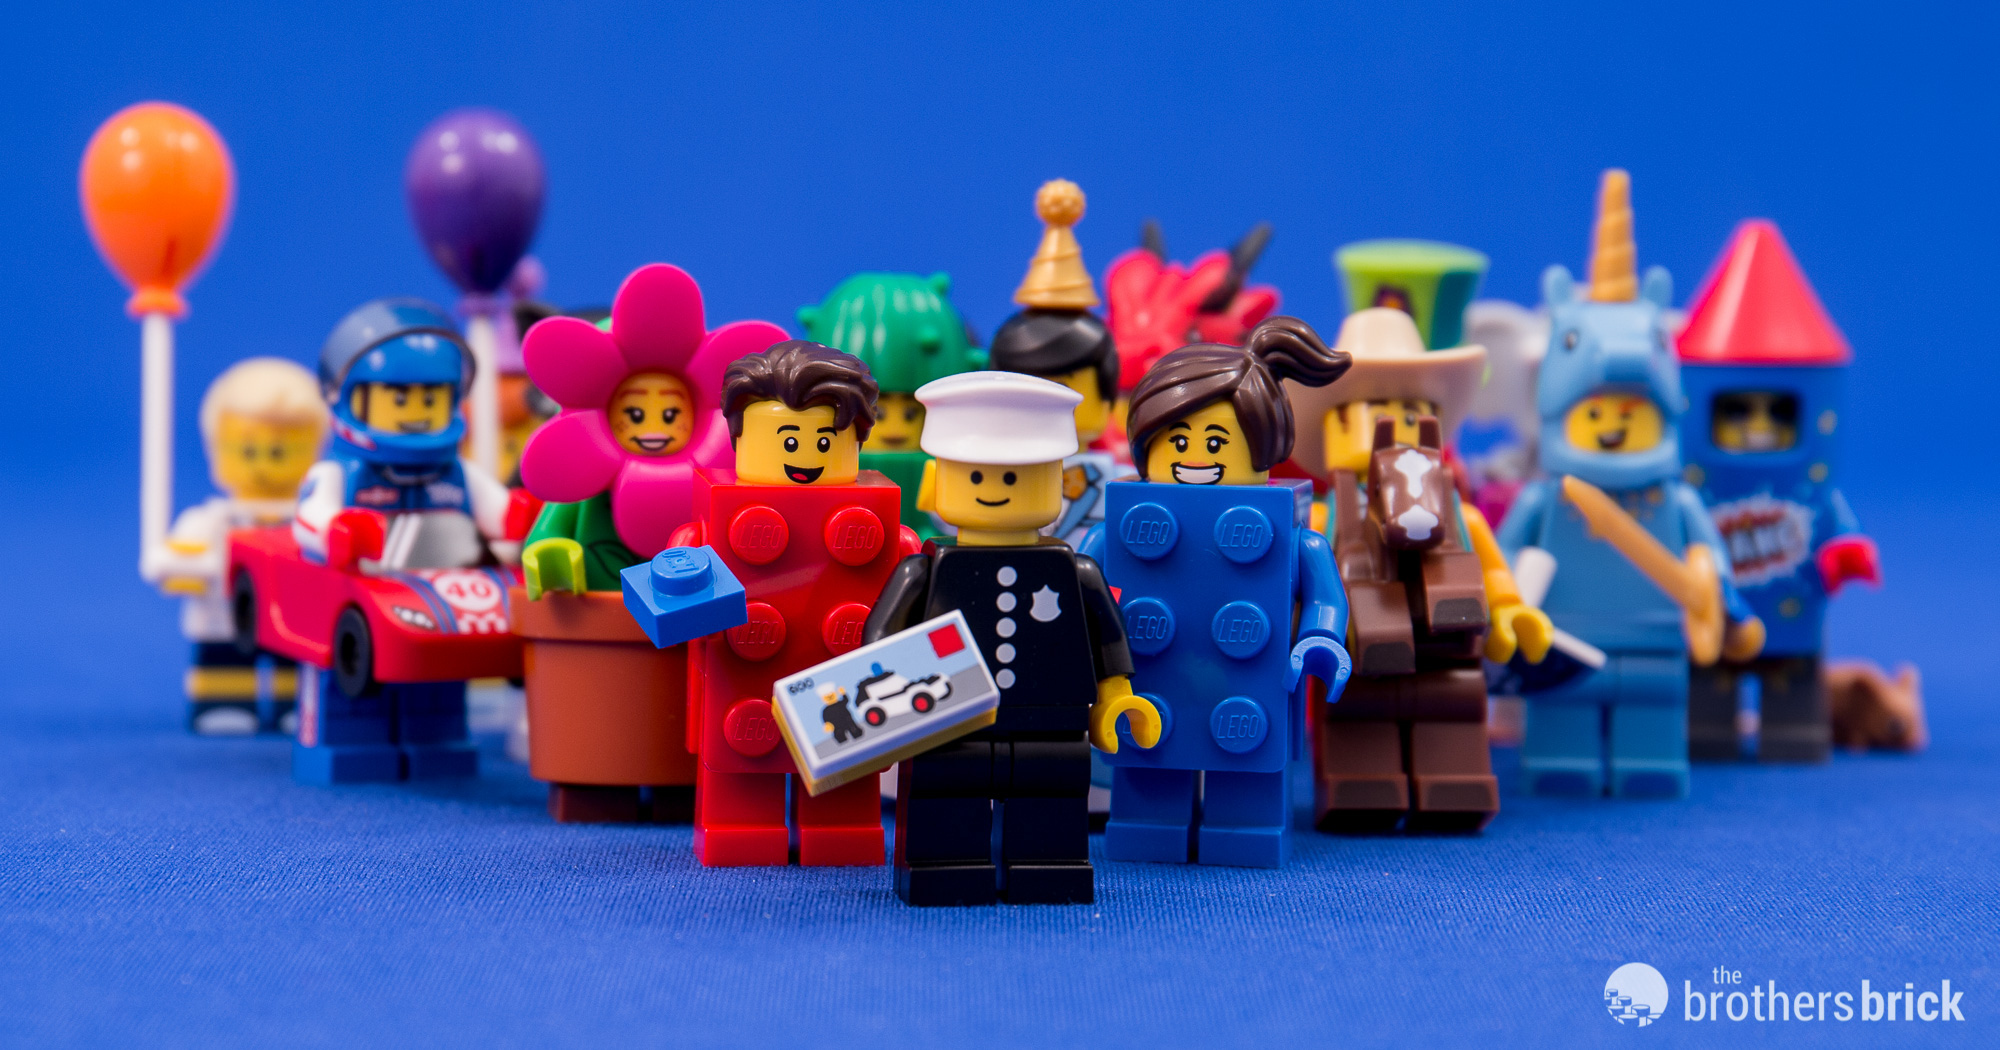 genuine lego minifigures the blue brick girl from series 18